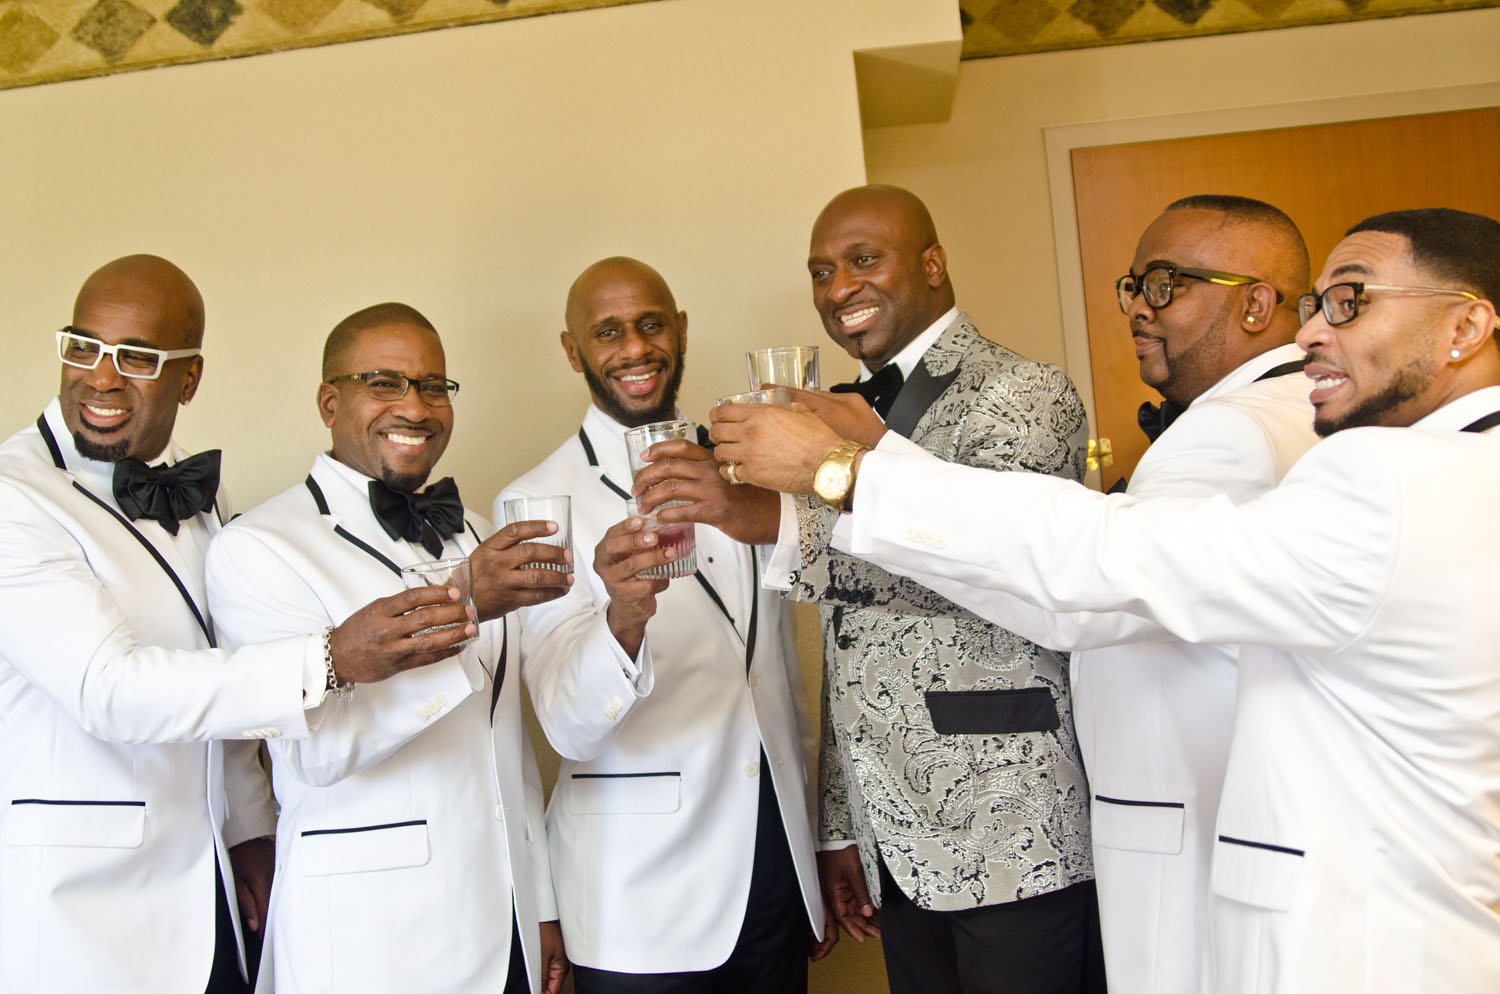 Groomsmen Having a Toast